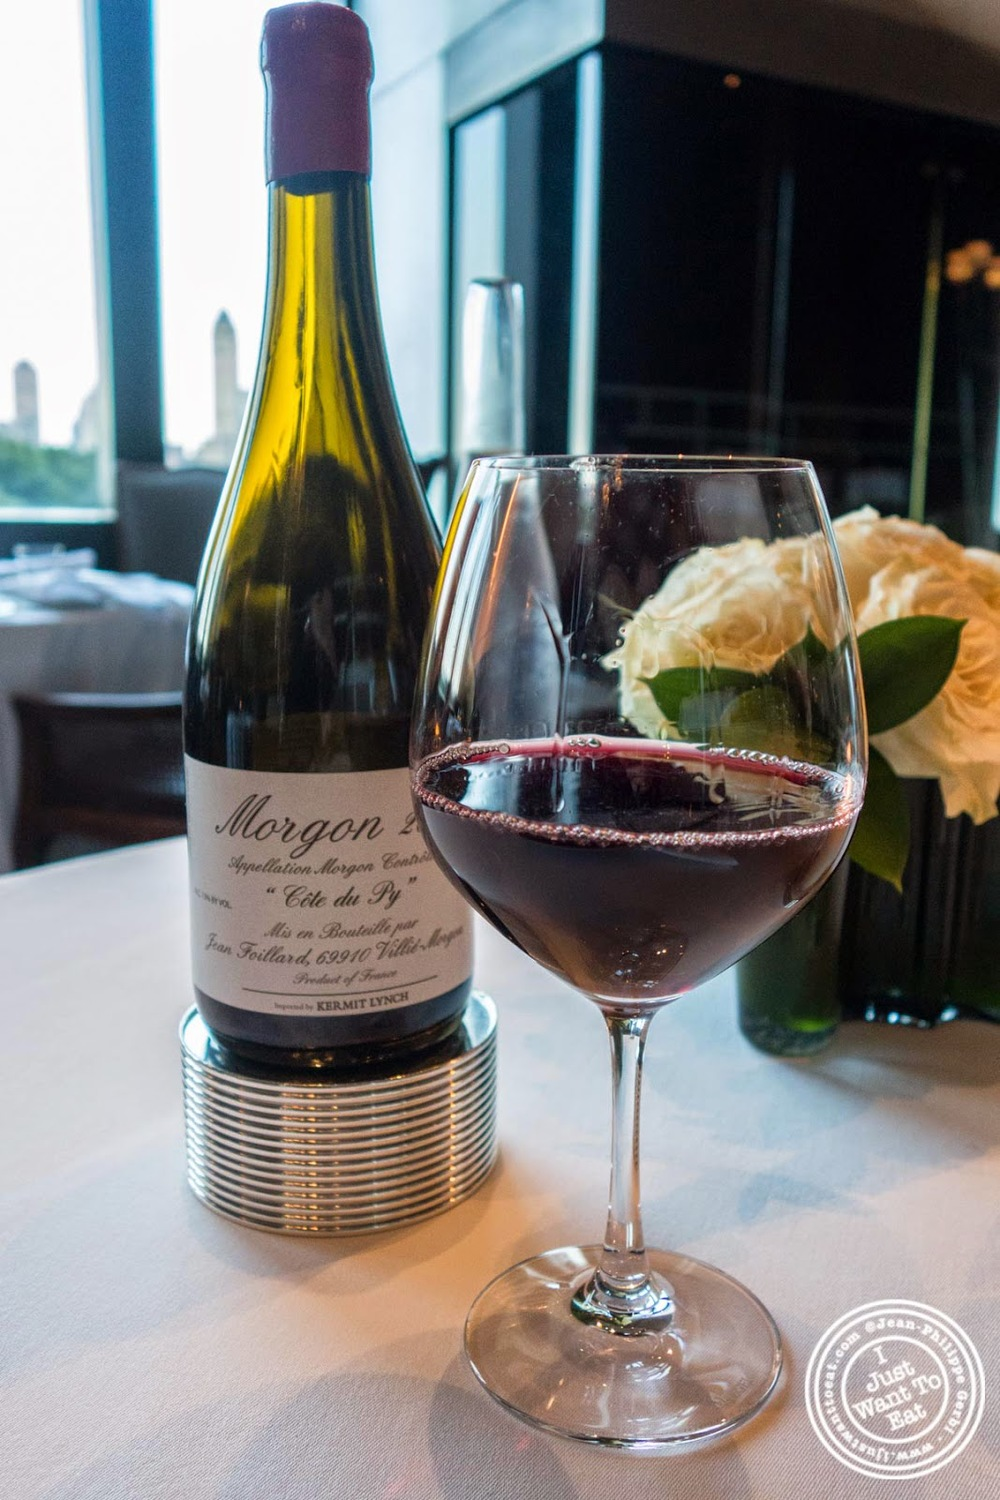 Jean Foillard Morgon Côte du Py, 2012 at Per Se in New York, NY